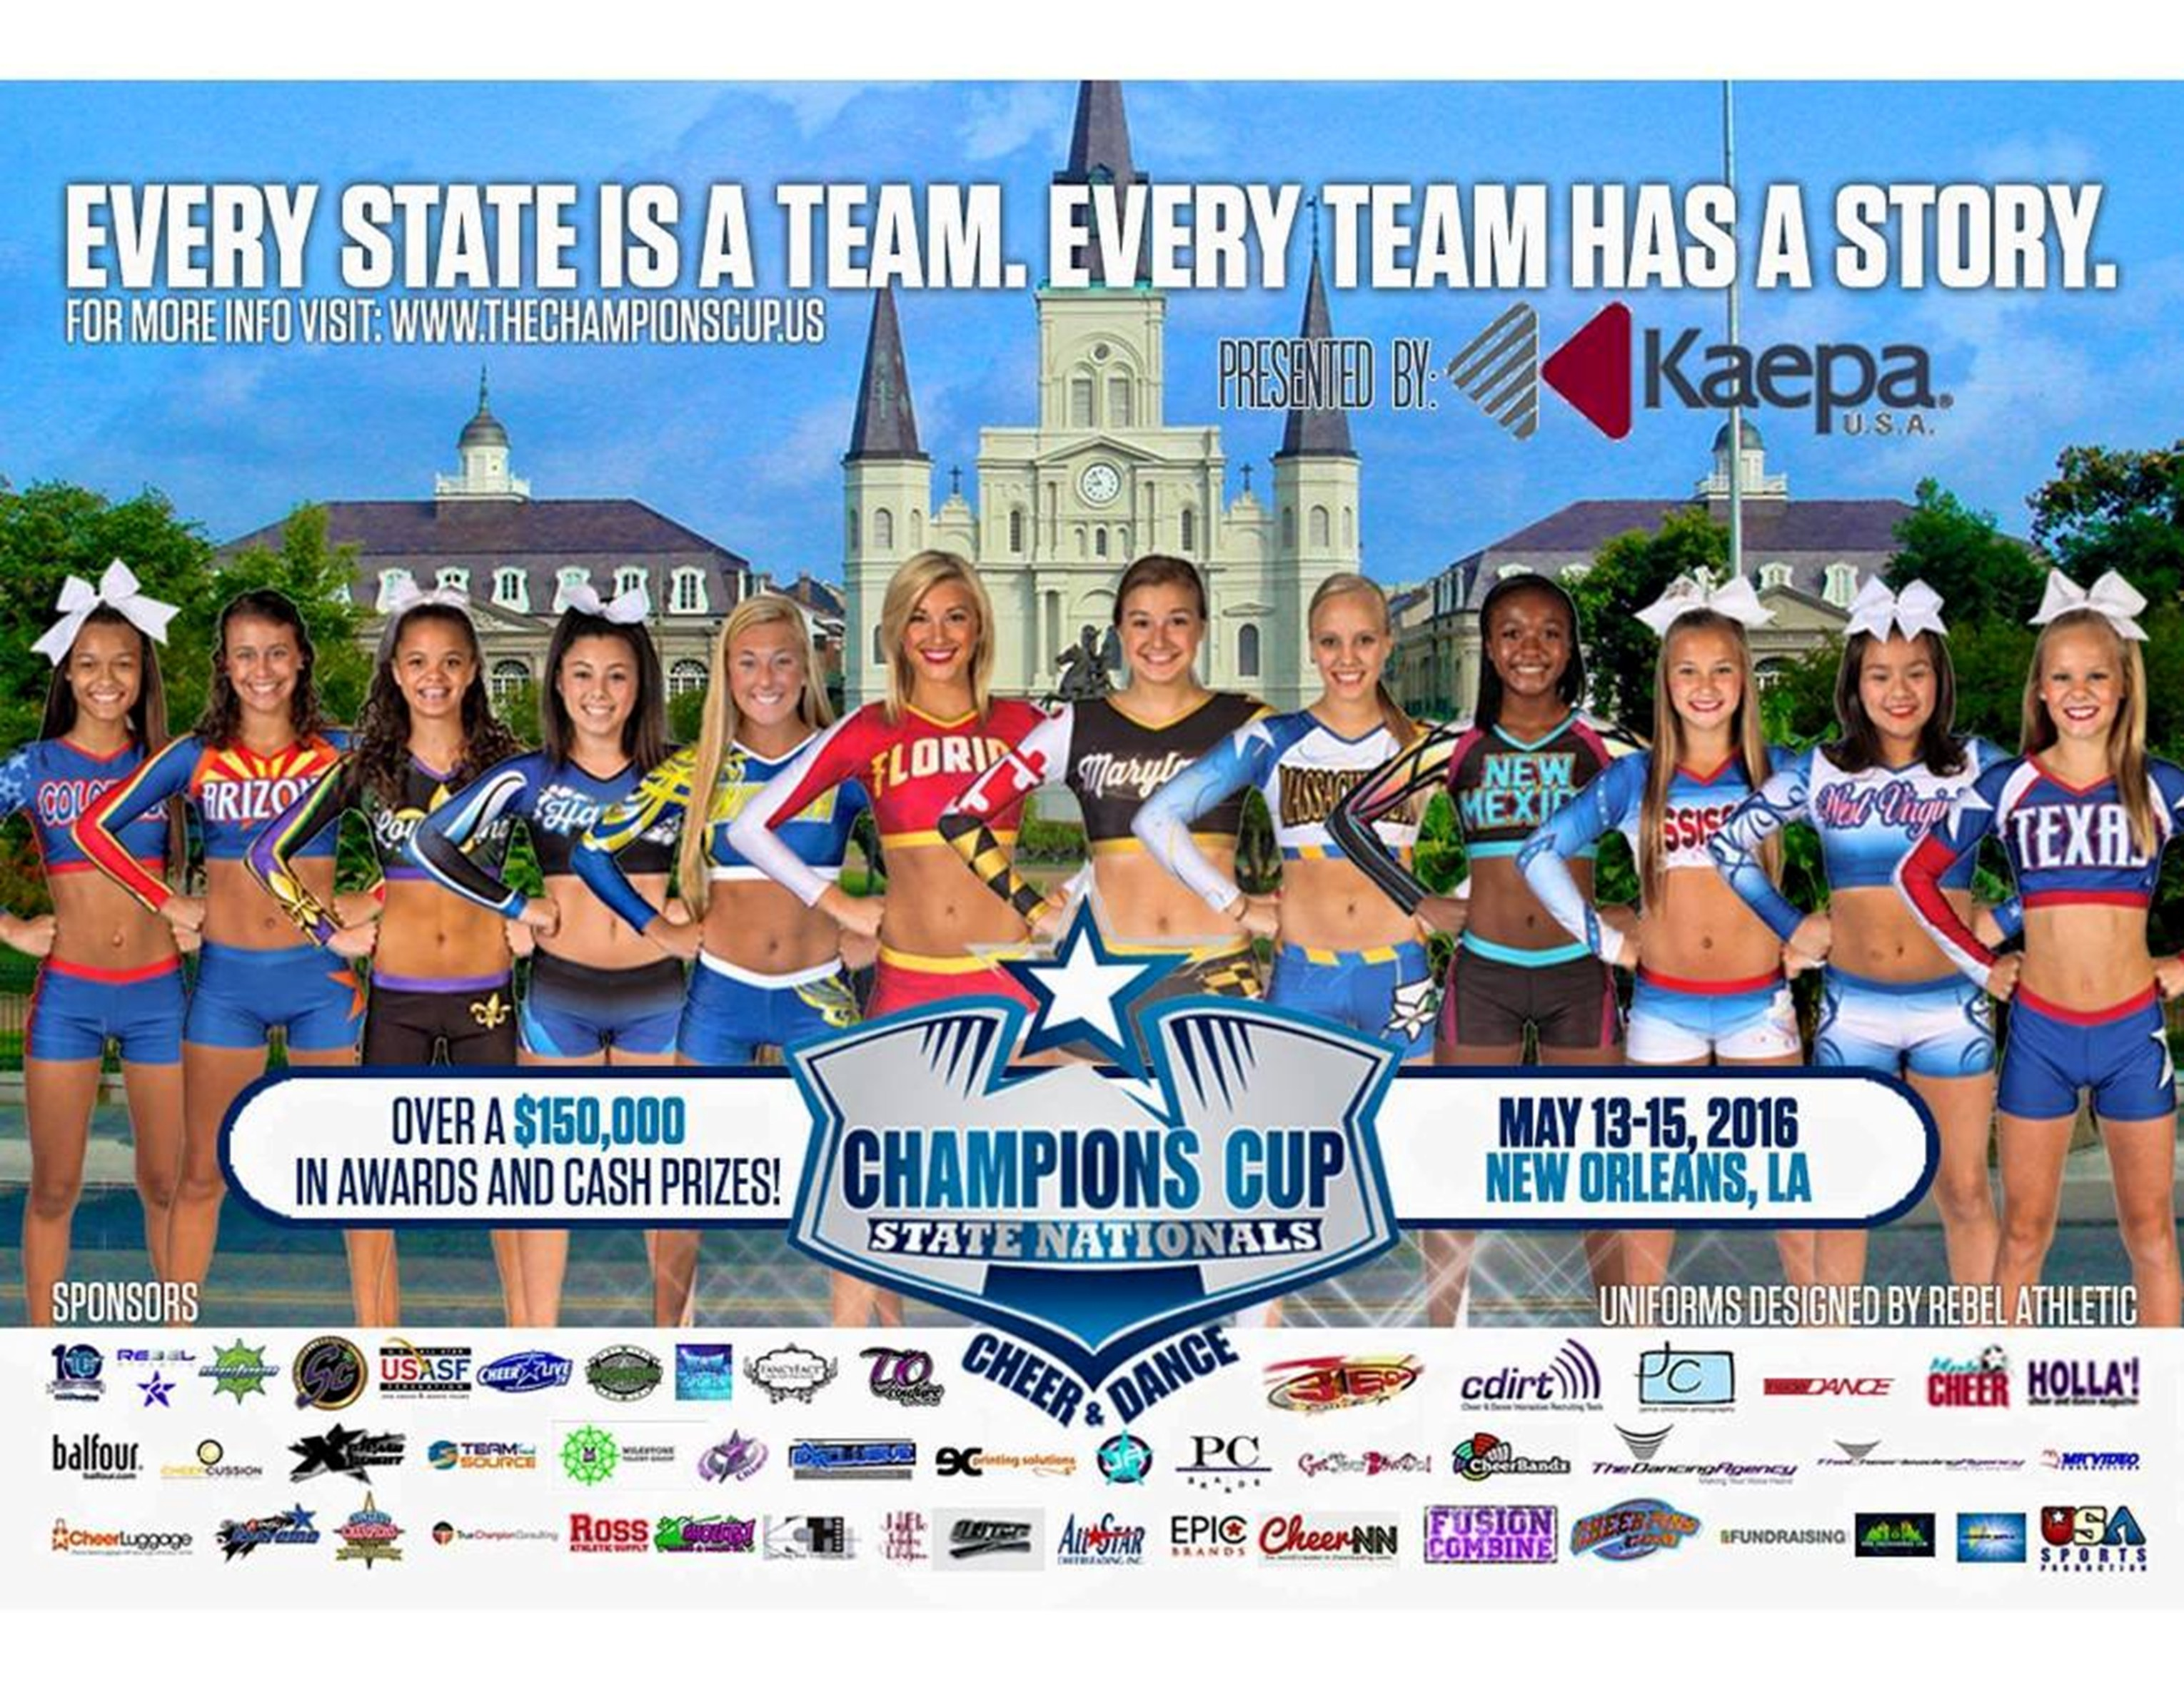 Copy of Copy of The Champions Cup Postcard Flyer 2016